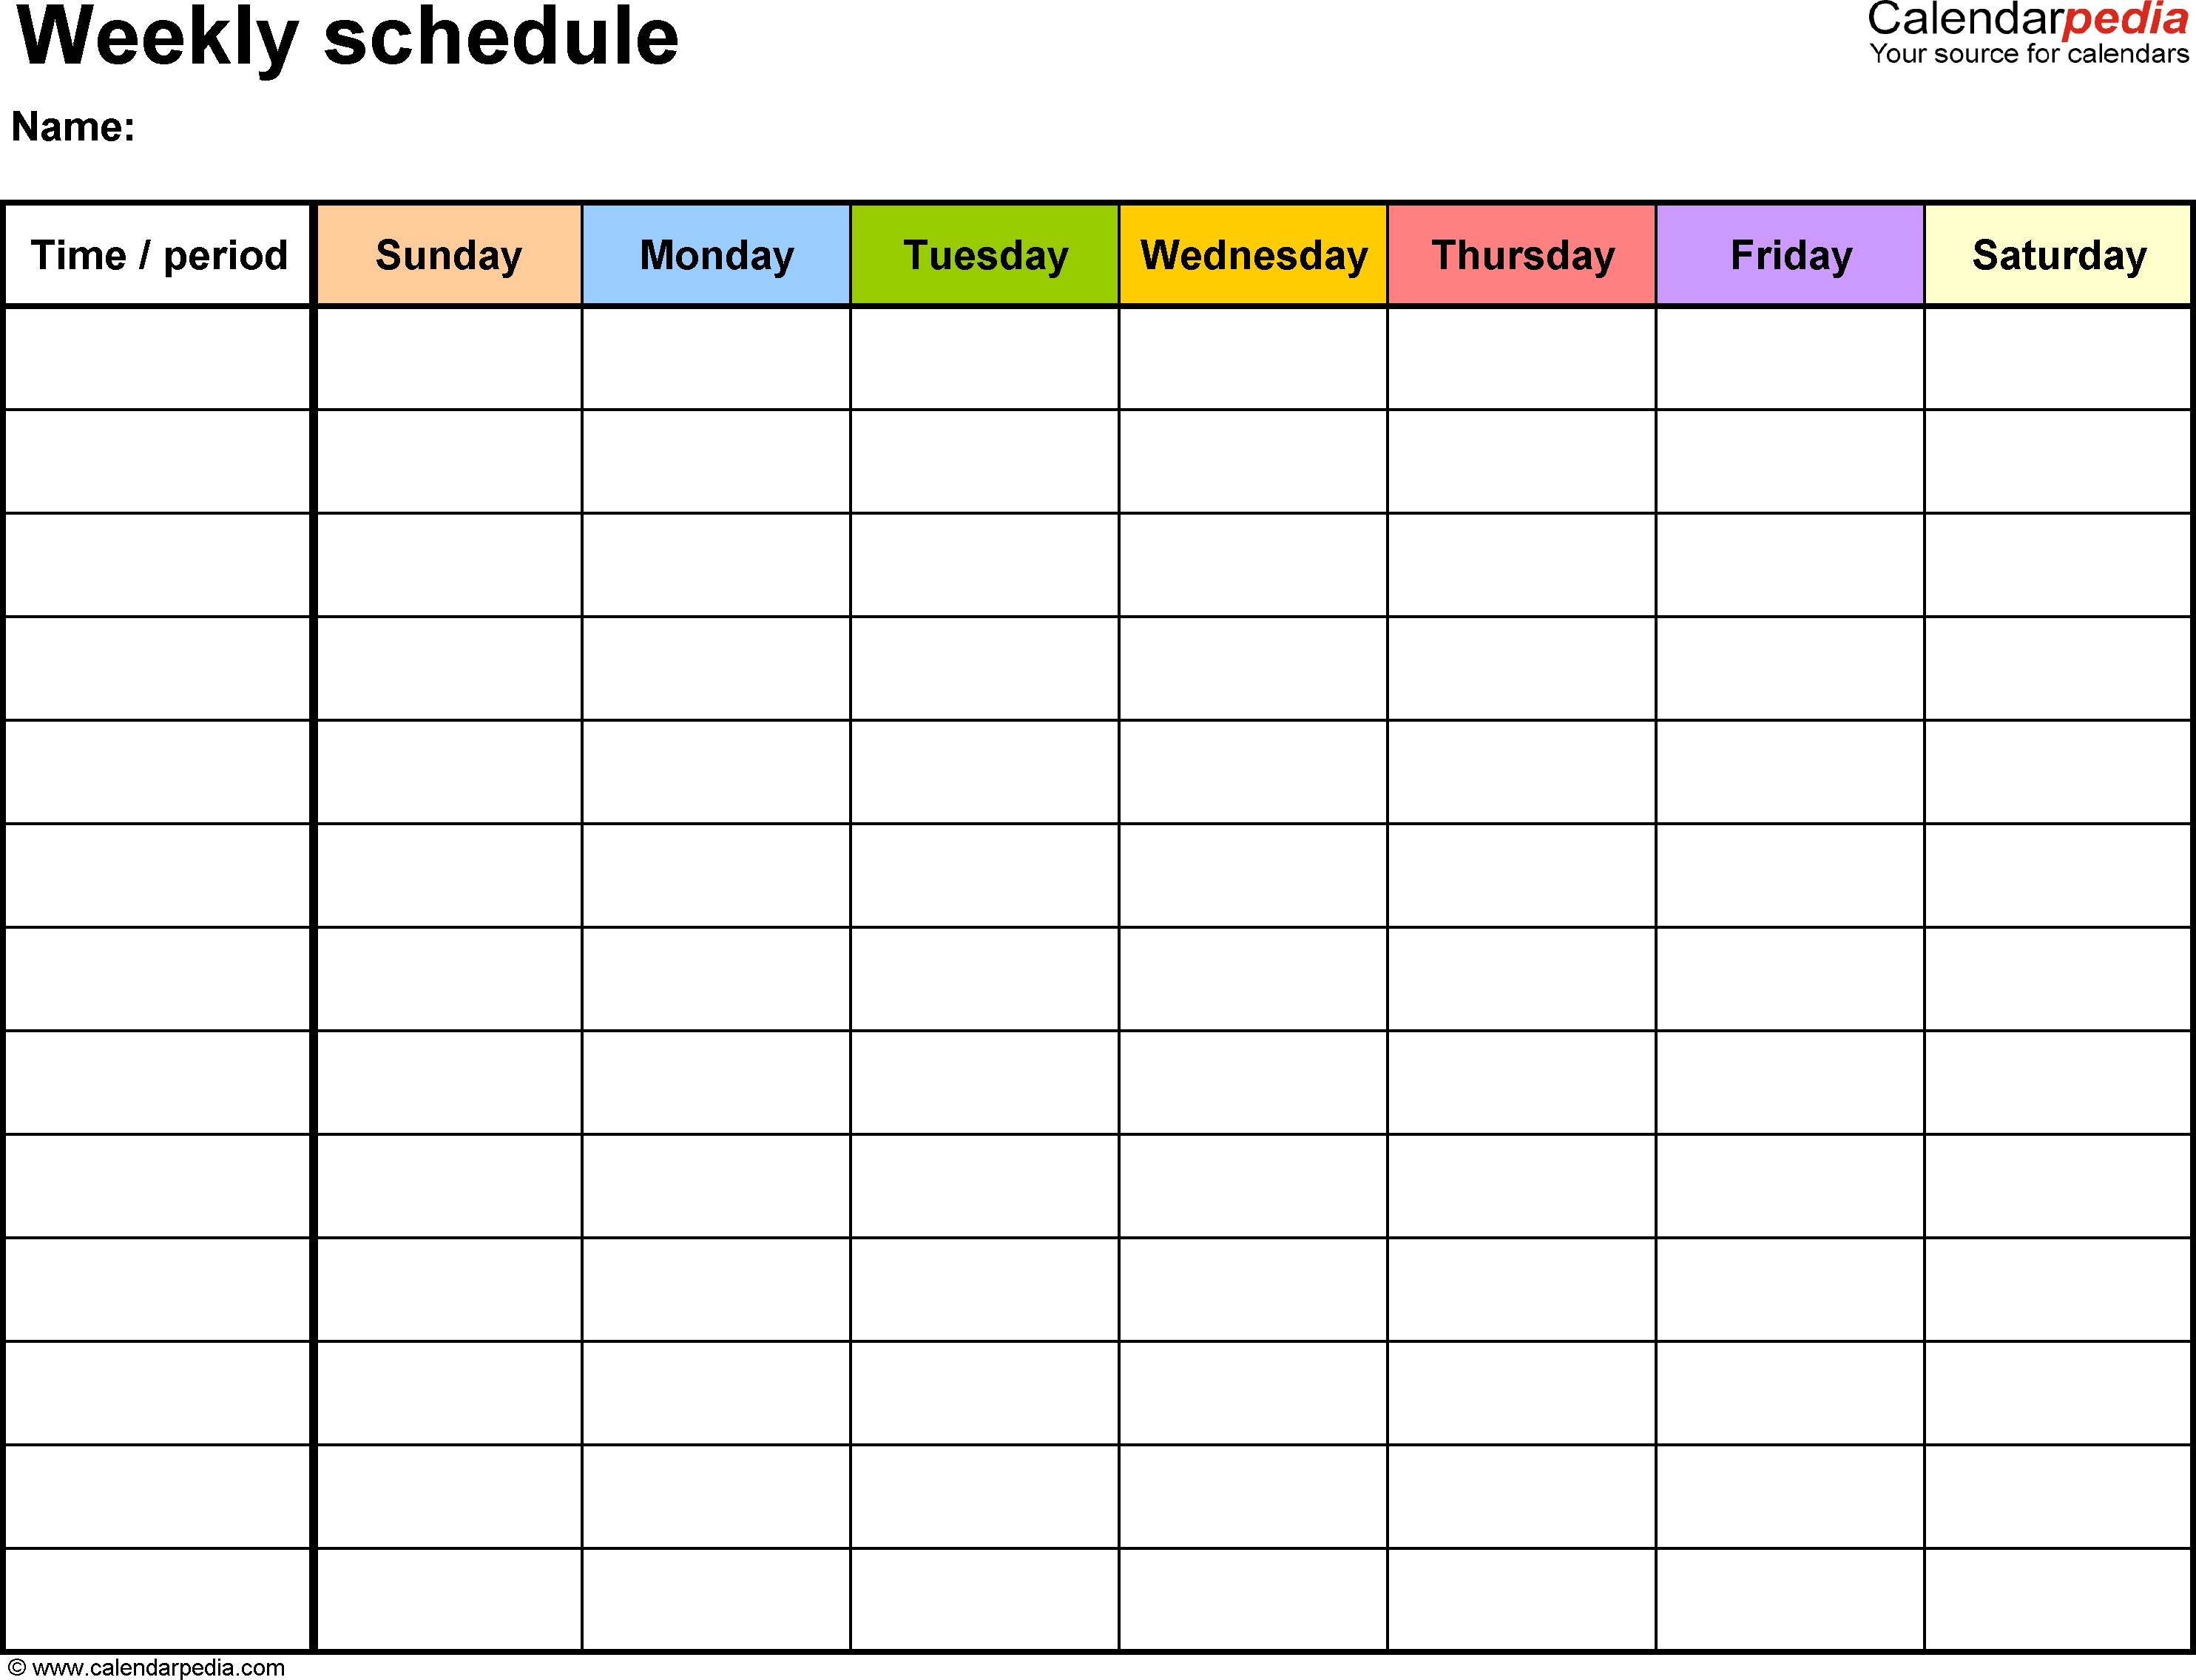 Free Weekly Schedule Templates For Word - 18 Templates with regard to Free Calendars Monday To Sunday